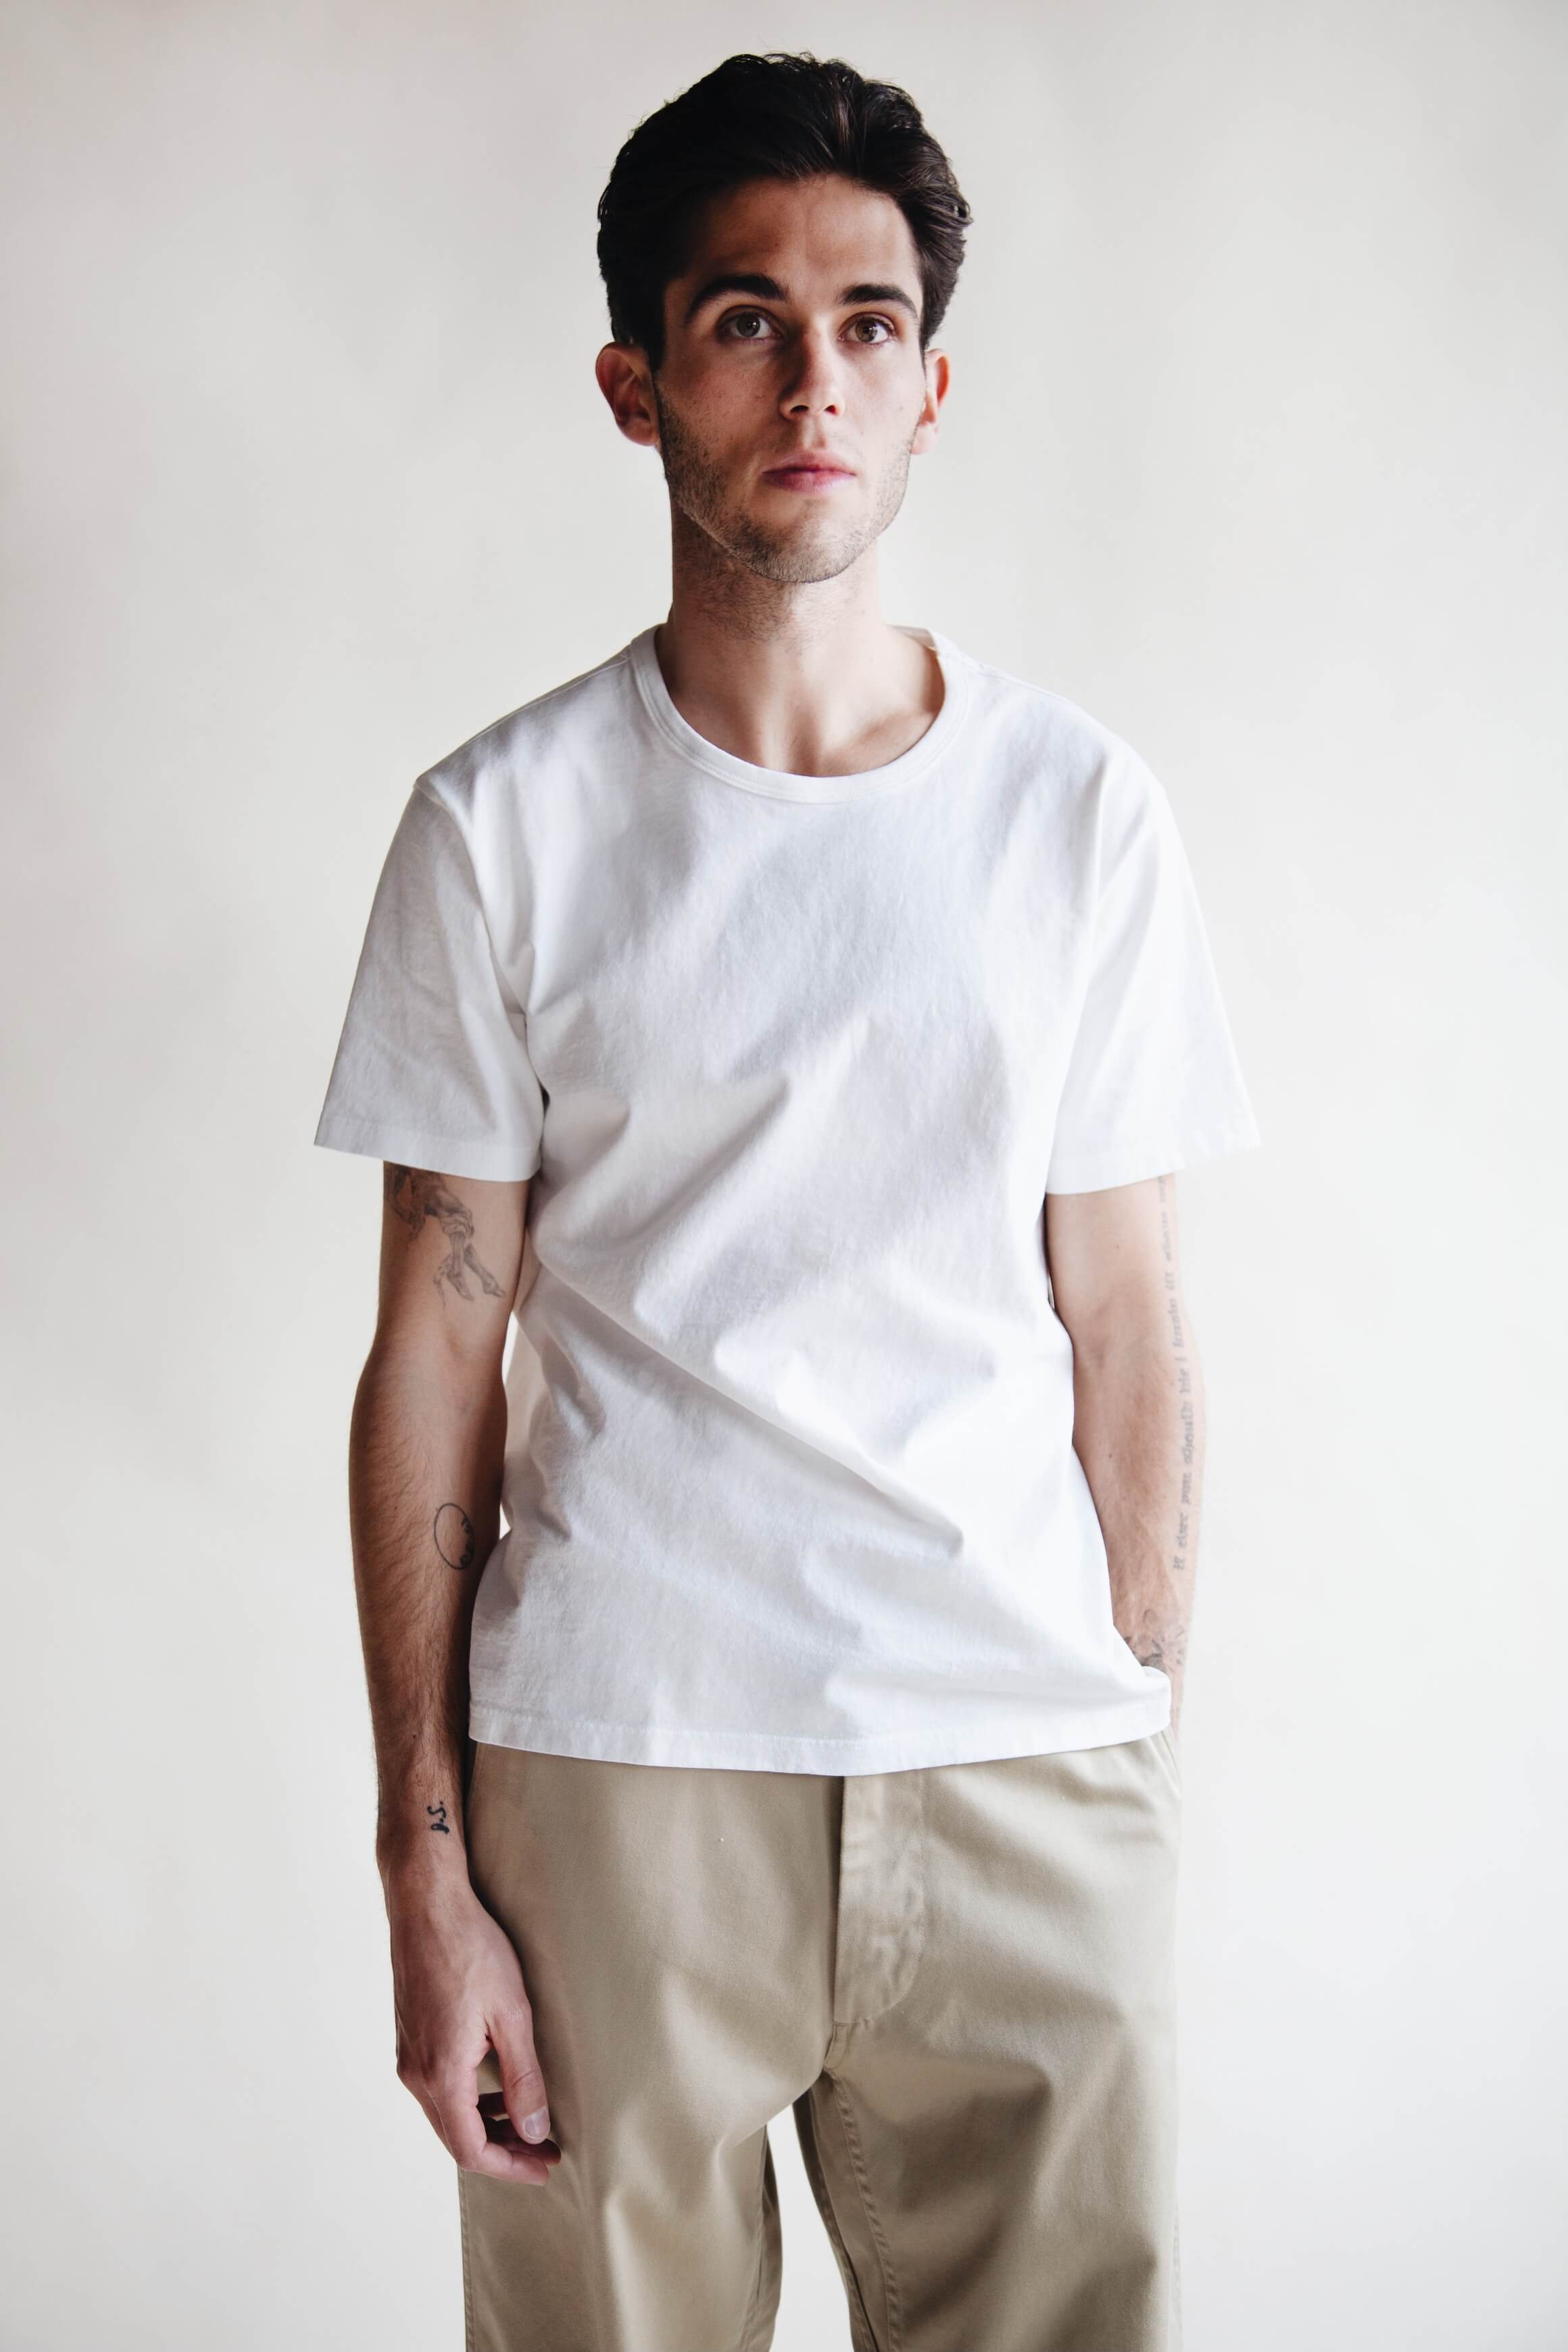 lady white co. white tee, nanamica wide chinos and visvim corda on body folk sneakers